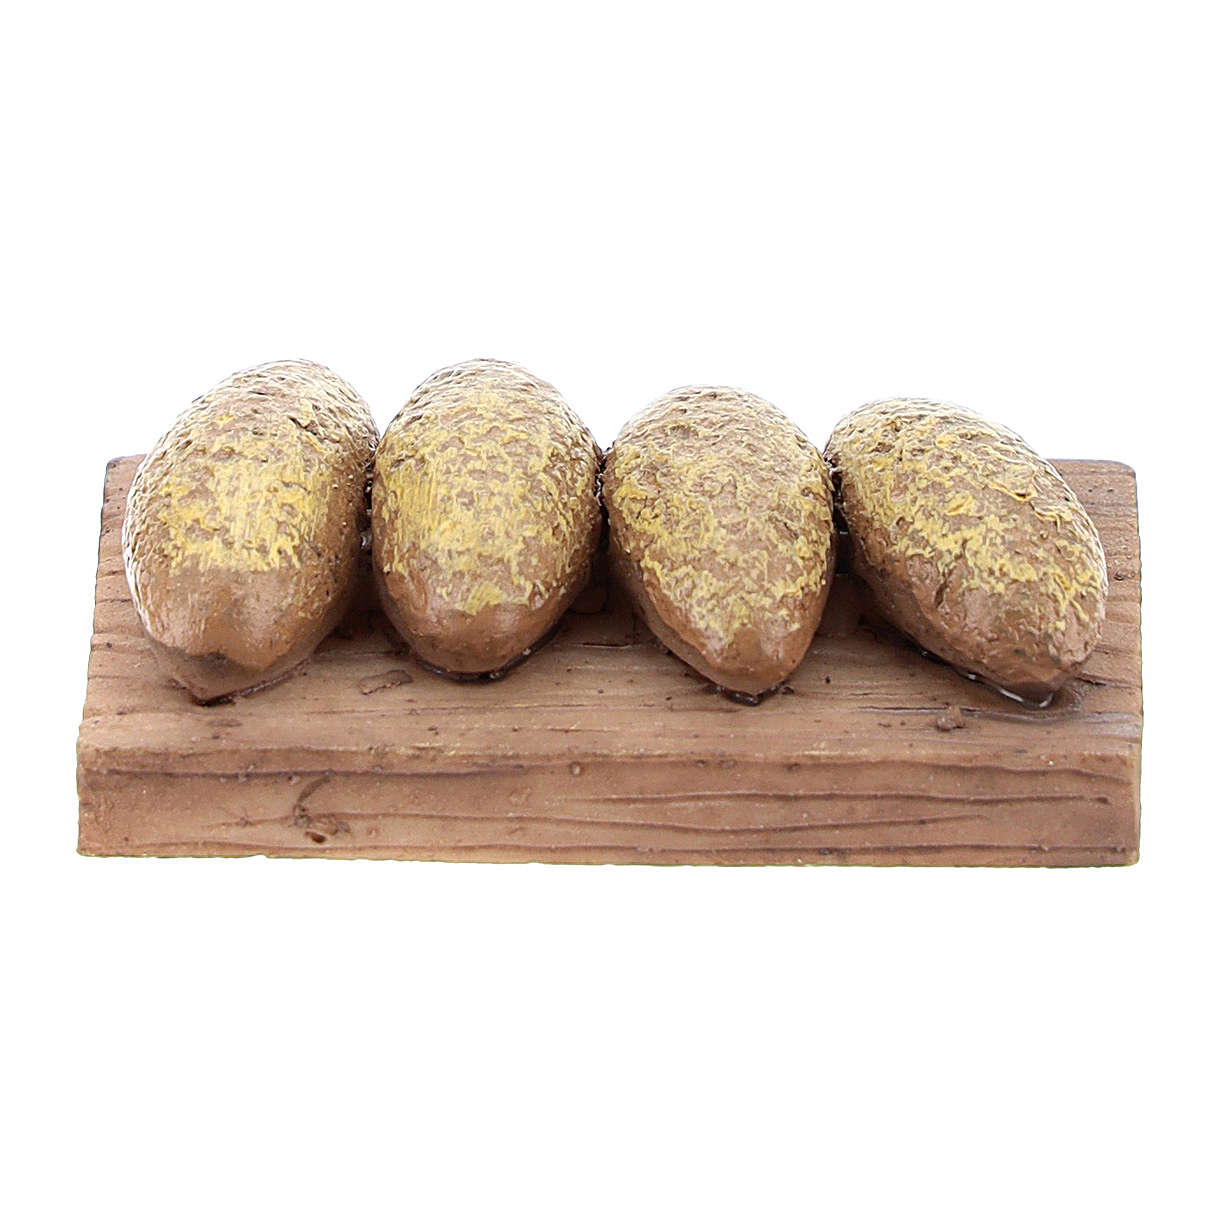 Miniature table with bread in resin, 1x4x3 cm for 6-8 cm nativity 4